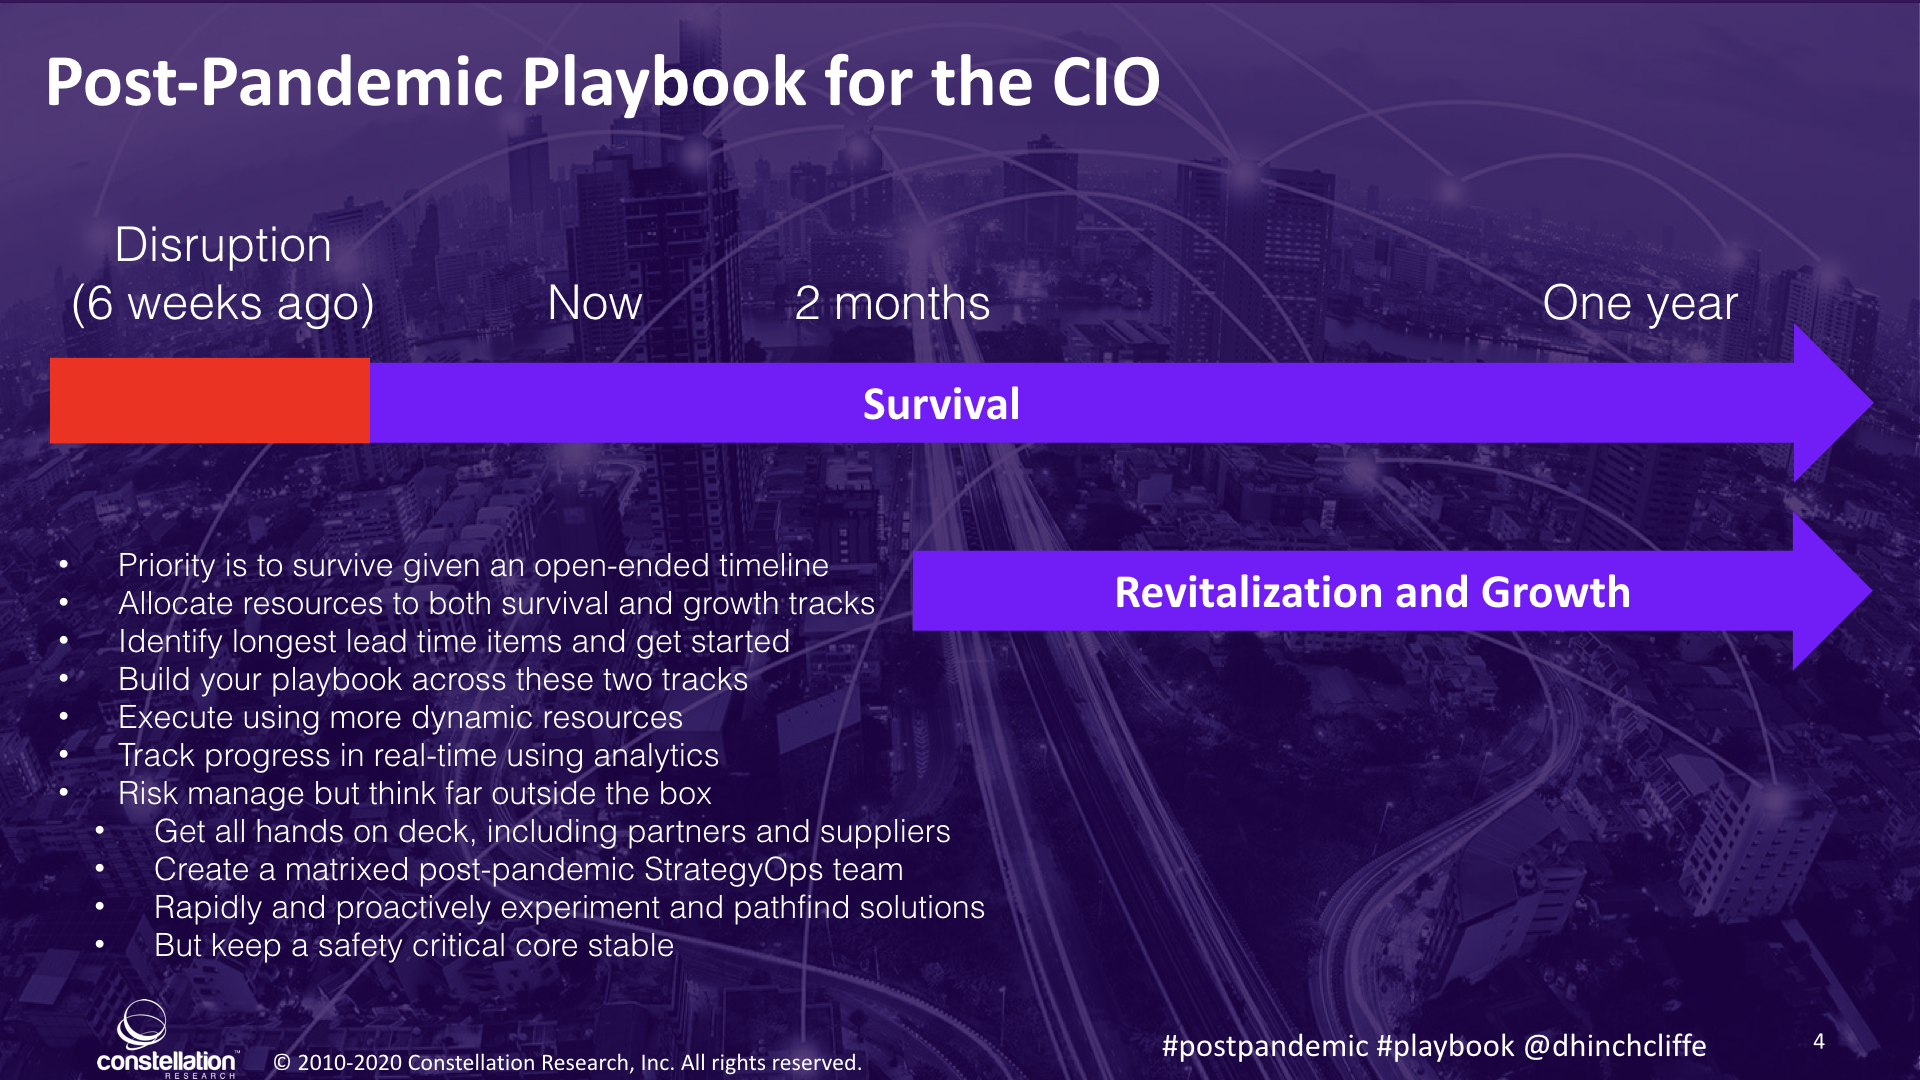 The CIO Must Divide Time Between Survive and Thrive During and Post-Pandemic